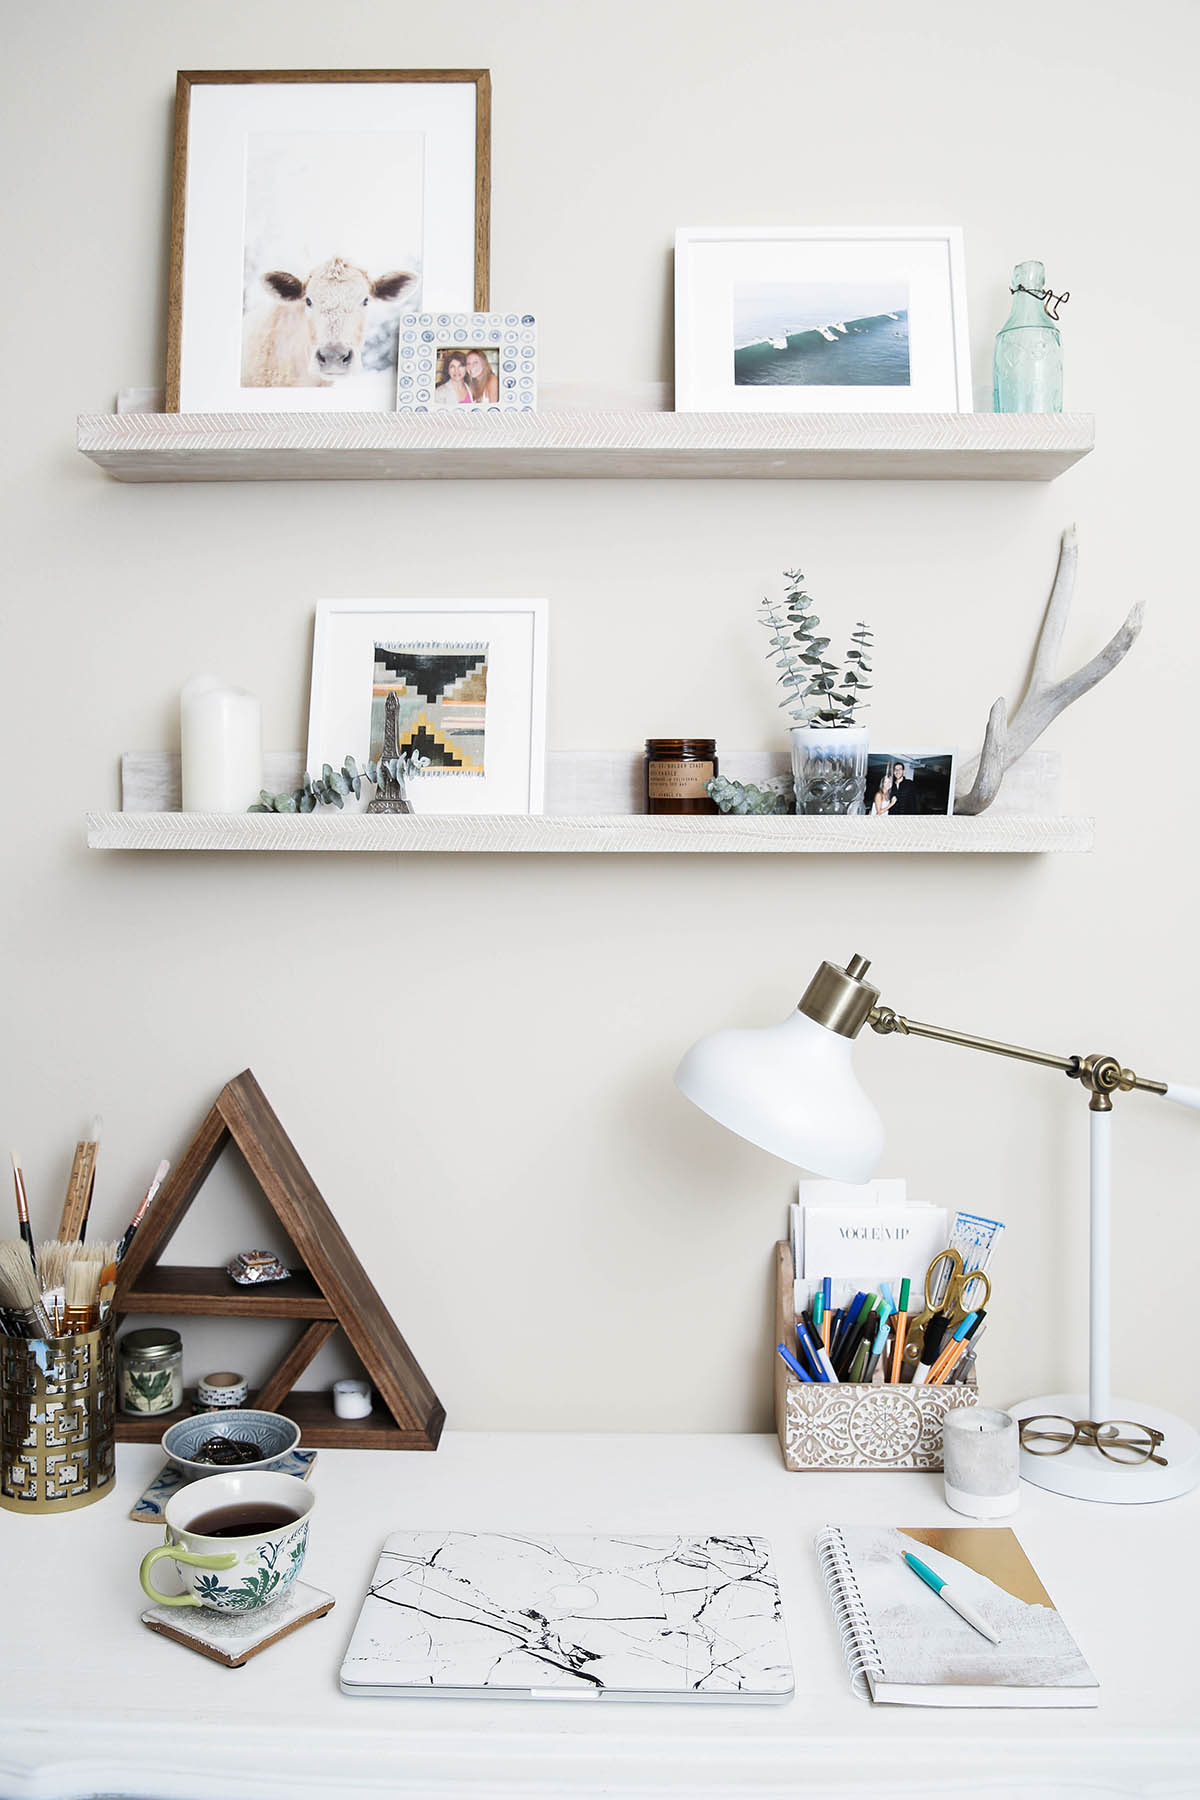 home office decor with Minted prints and shelves